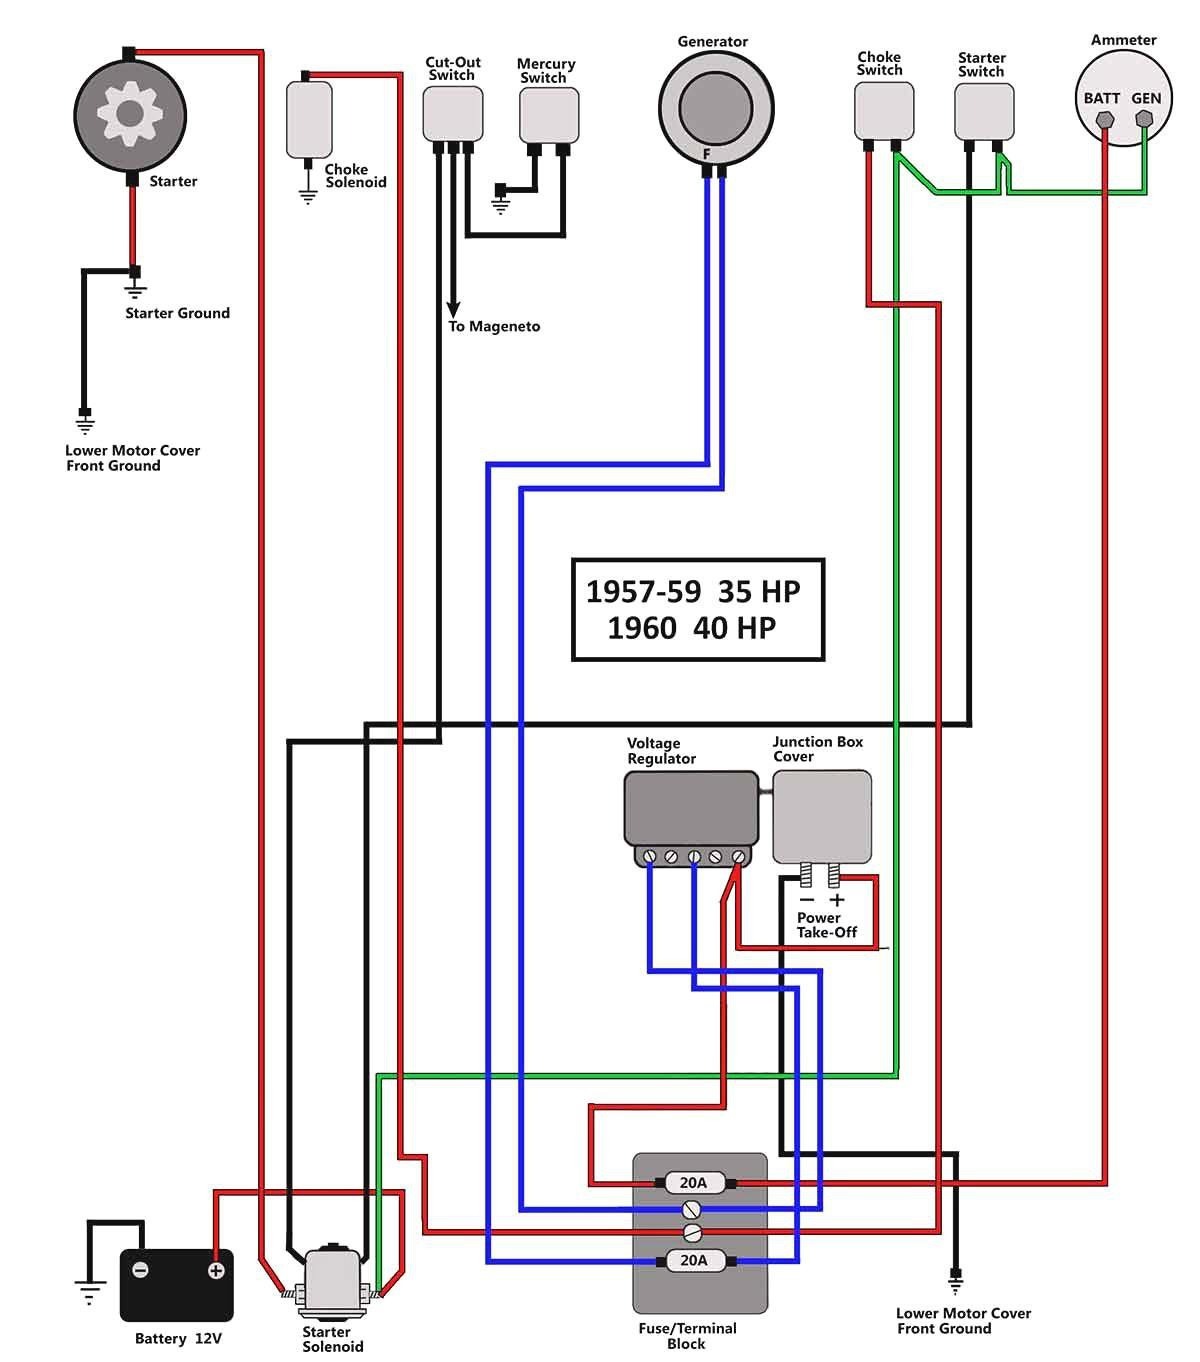 hight resolution of tilt relay 40 hp evinrude wiring diagram wiring diagram services u2022 2004 mercury outboard wiring johnson